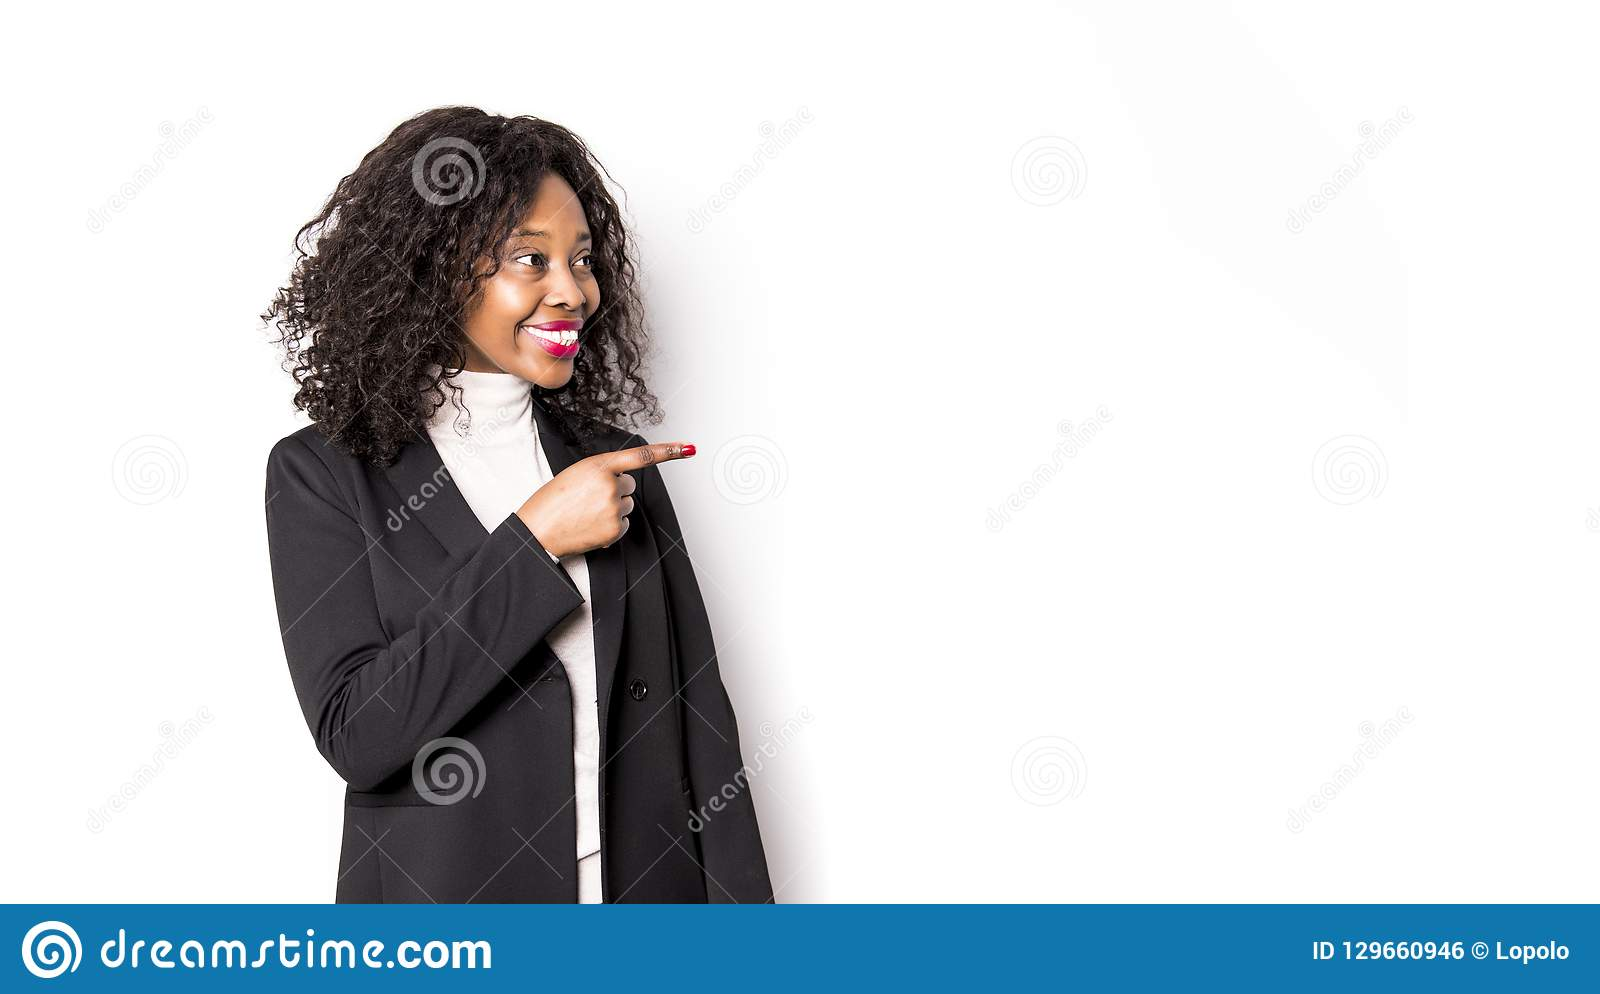 A black business woman poses for a portrait on studio white